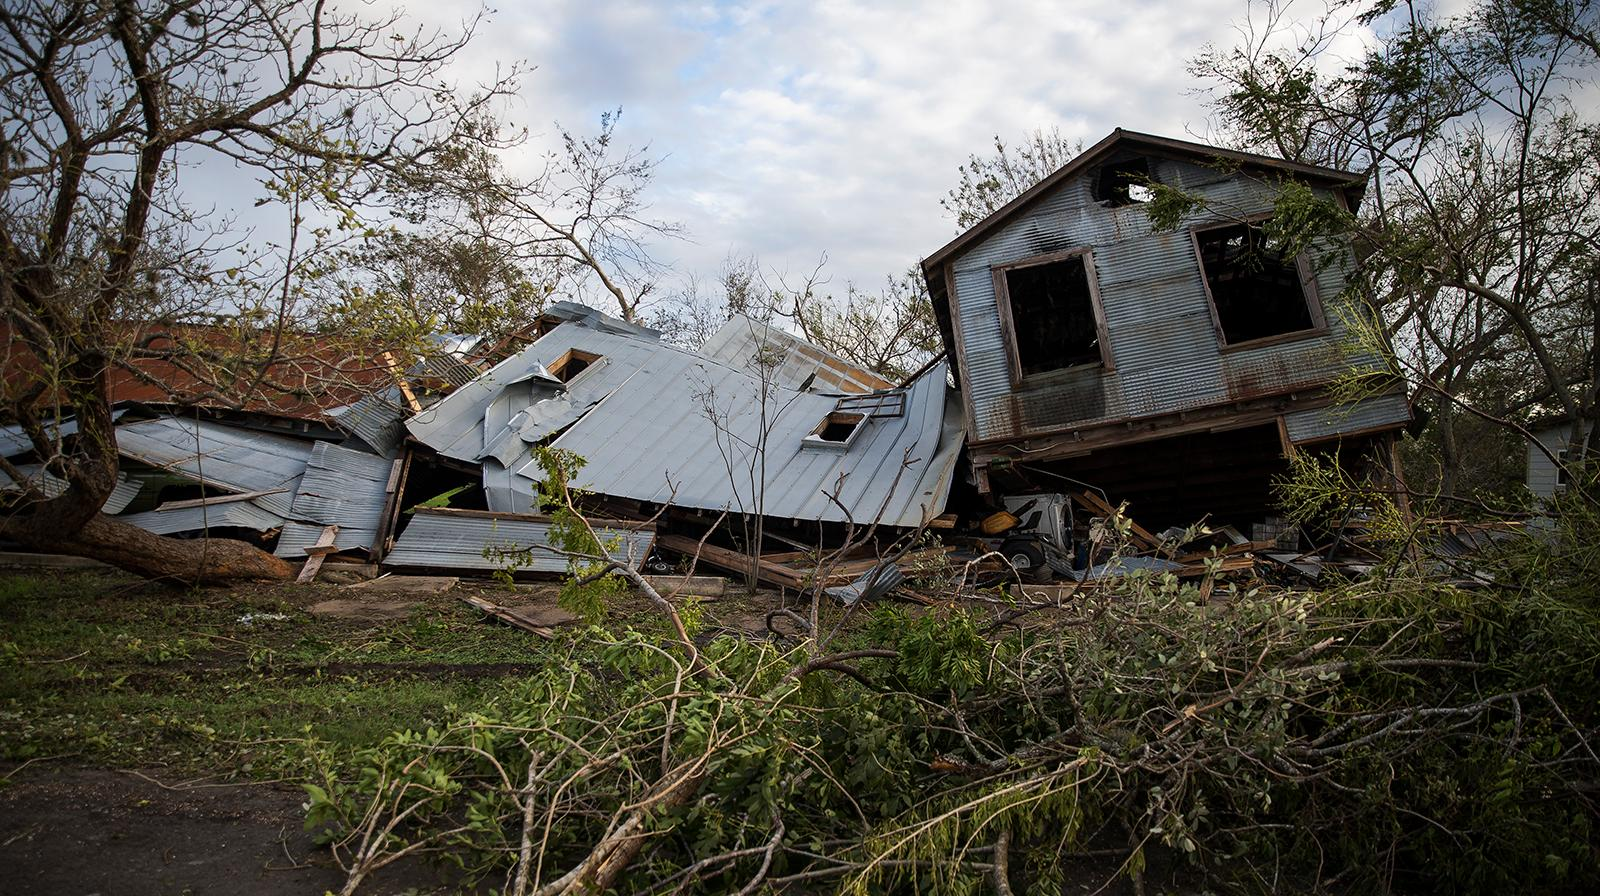 A building sits toppled from Hurricane Harvey in Refugio, Texas, Monday, Aug. 28, 2017. (Nick Wagner/Austin American-Statesman via AP)